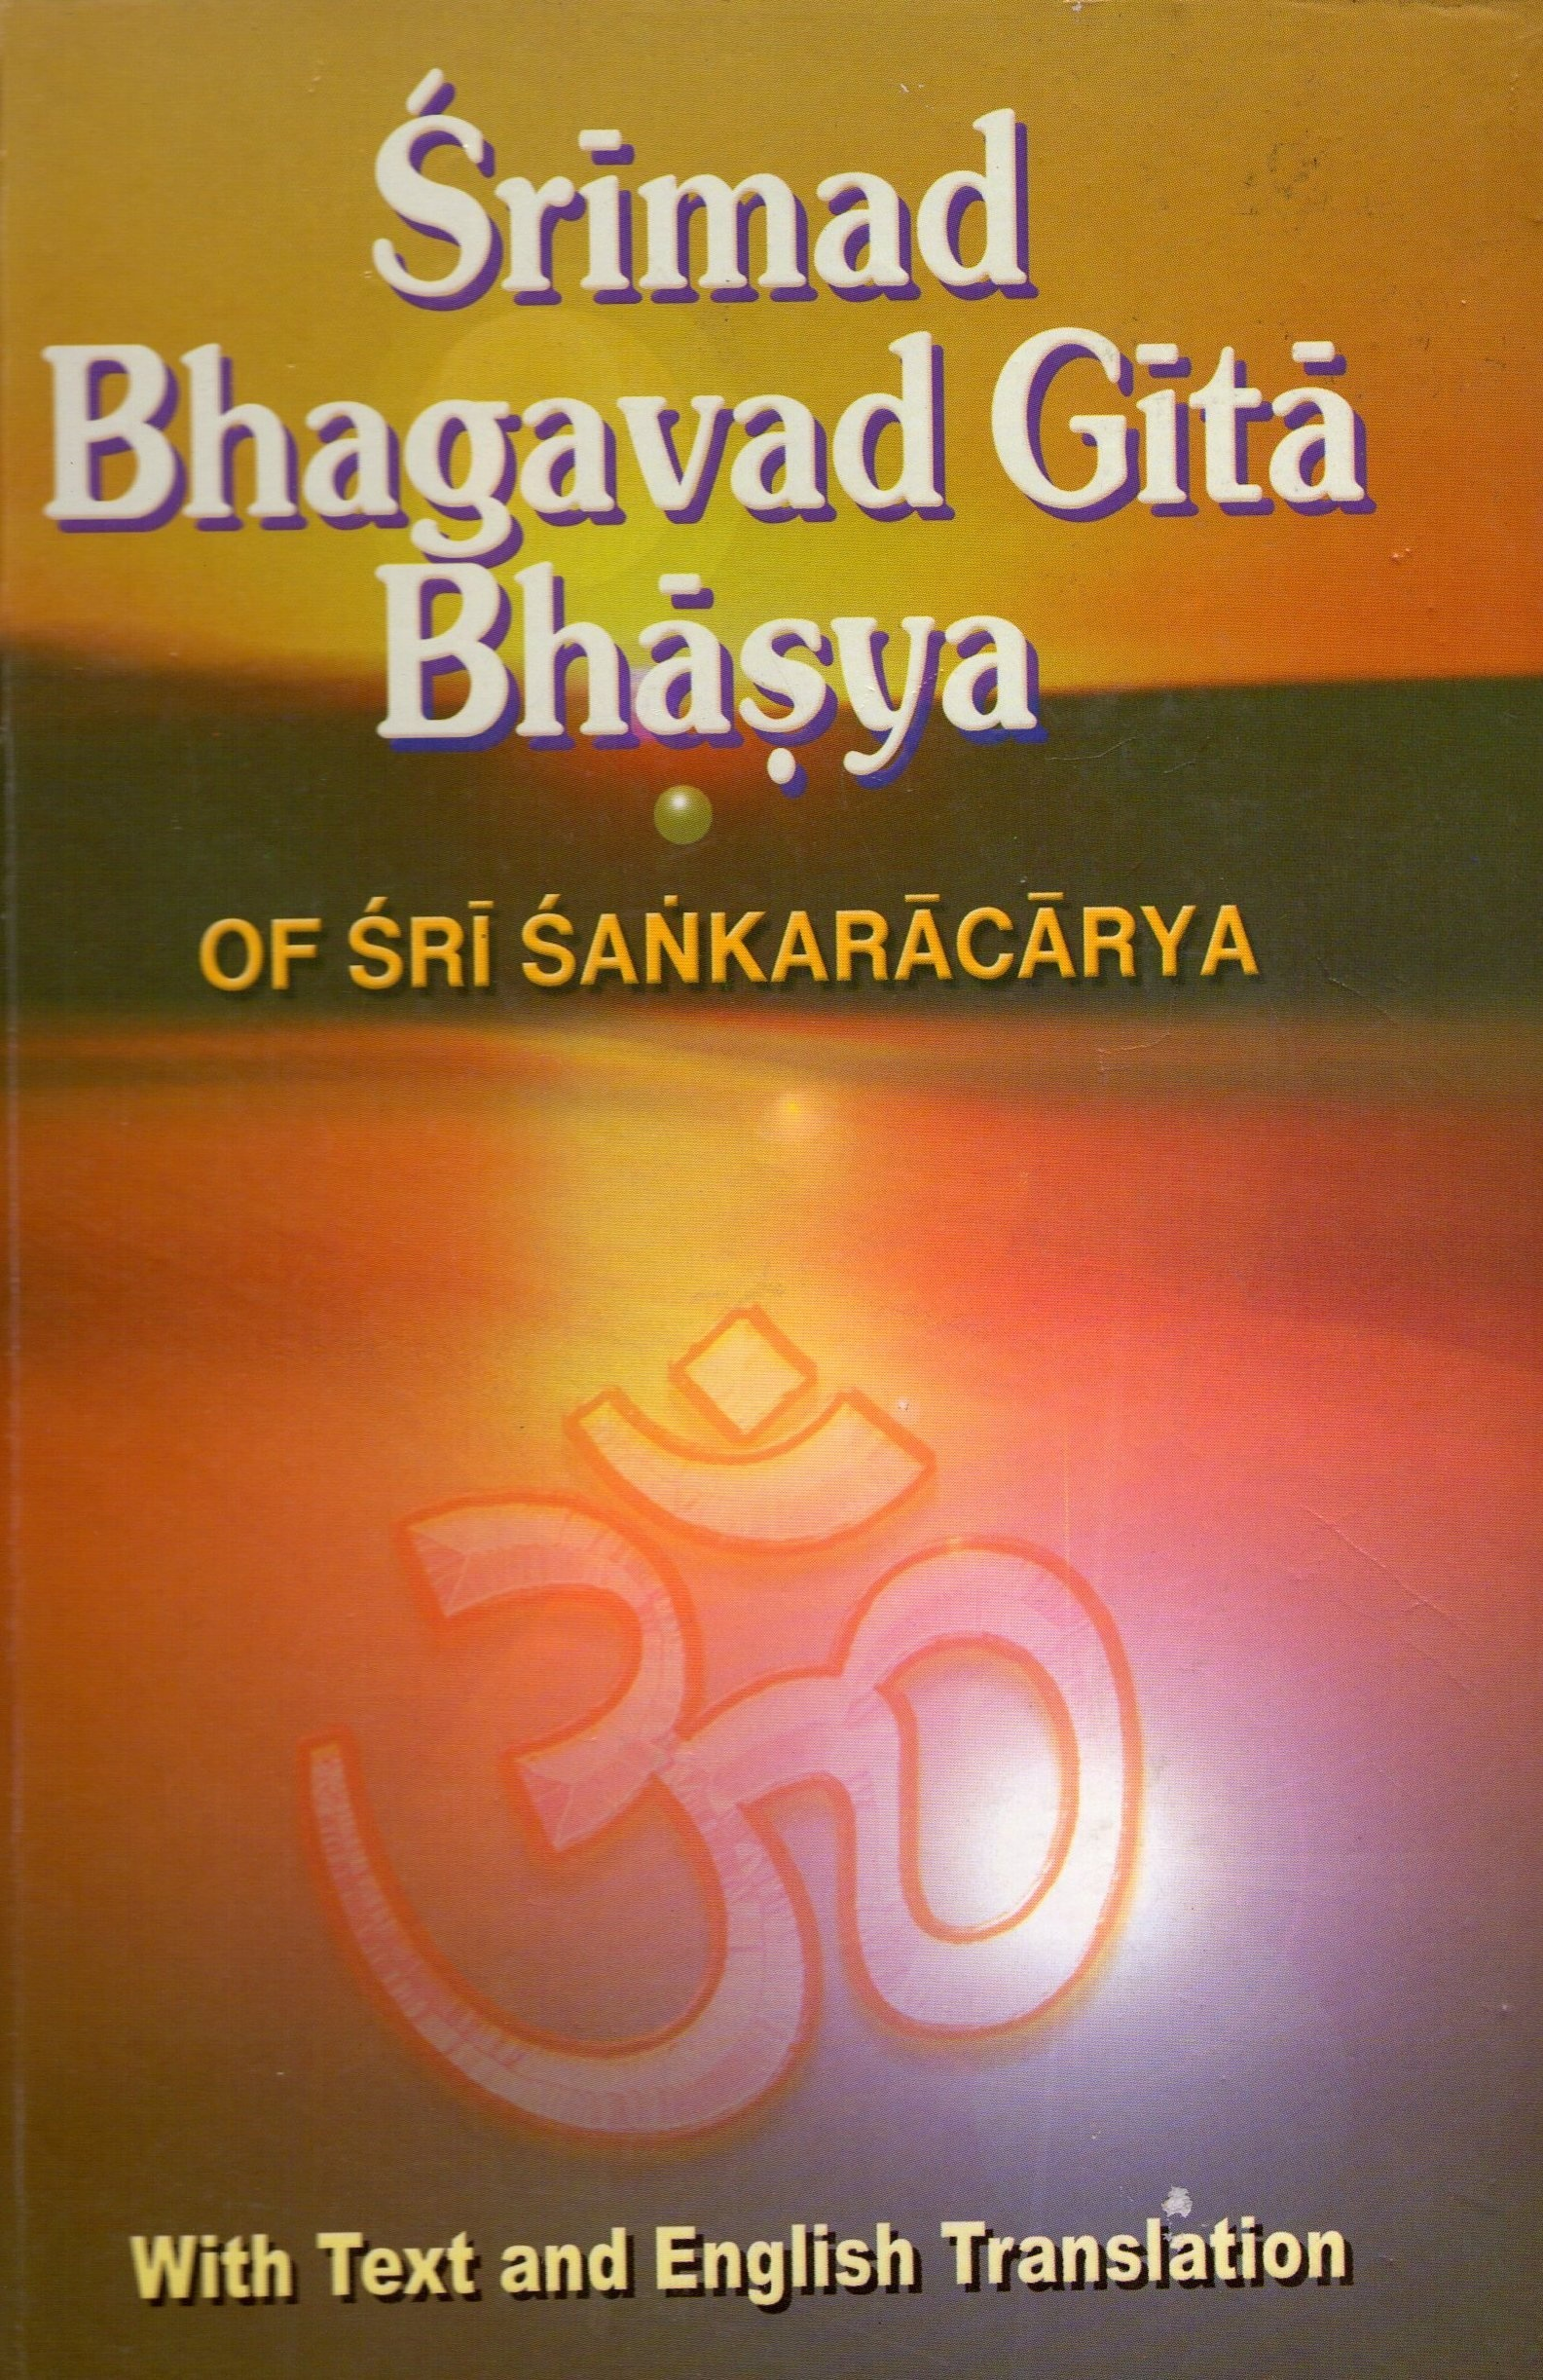 Which English Translation Of Bhagawad Gita Is Considered The Most